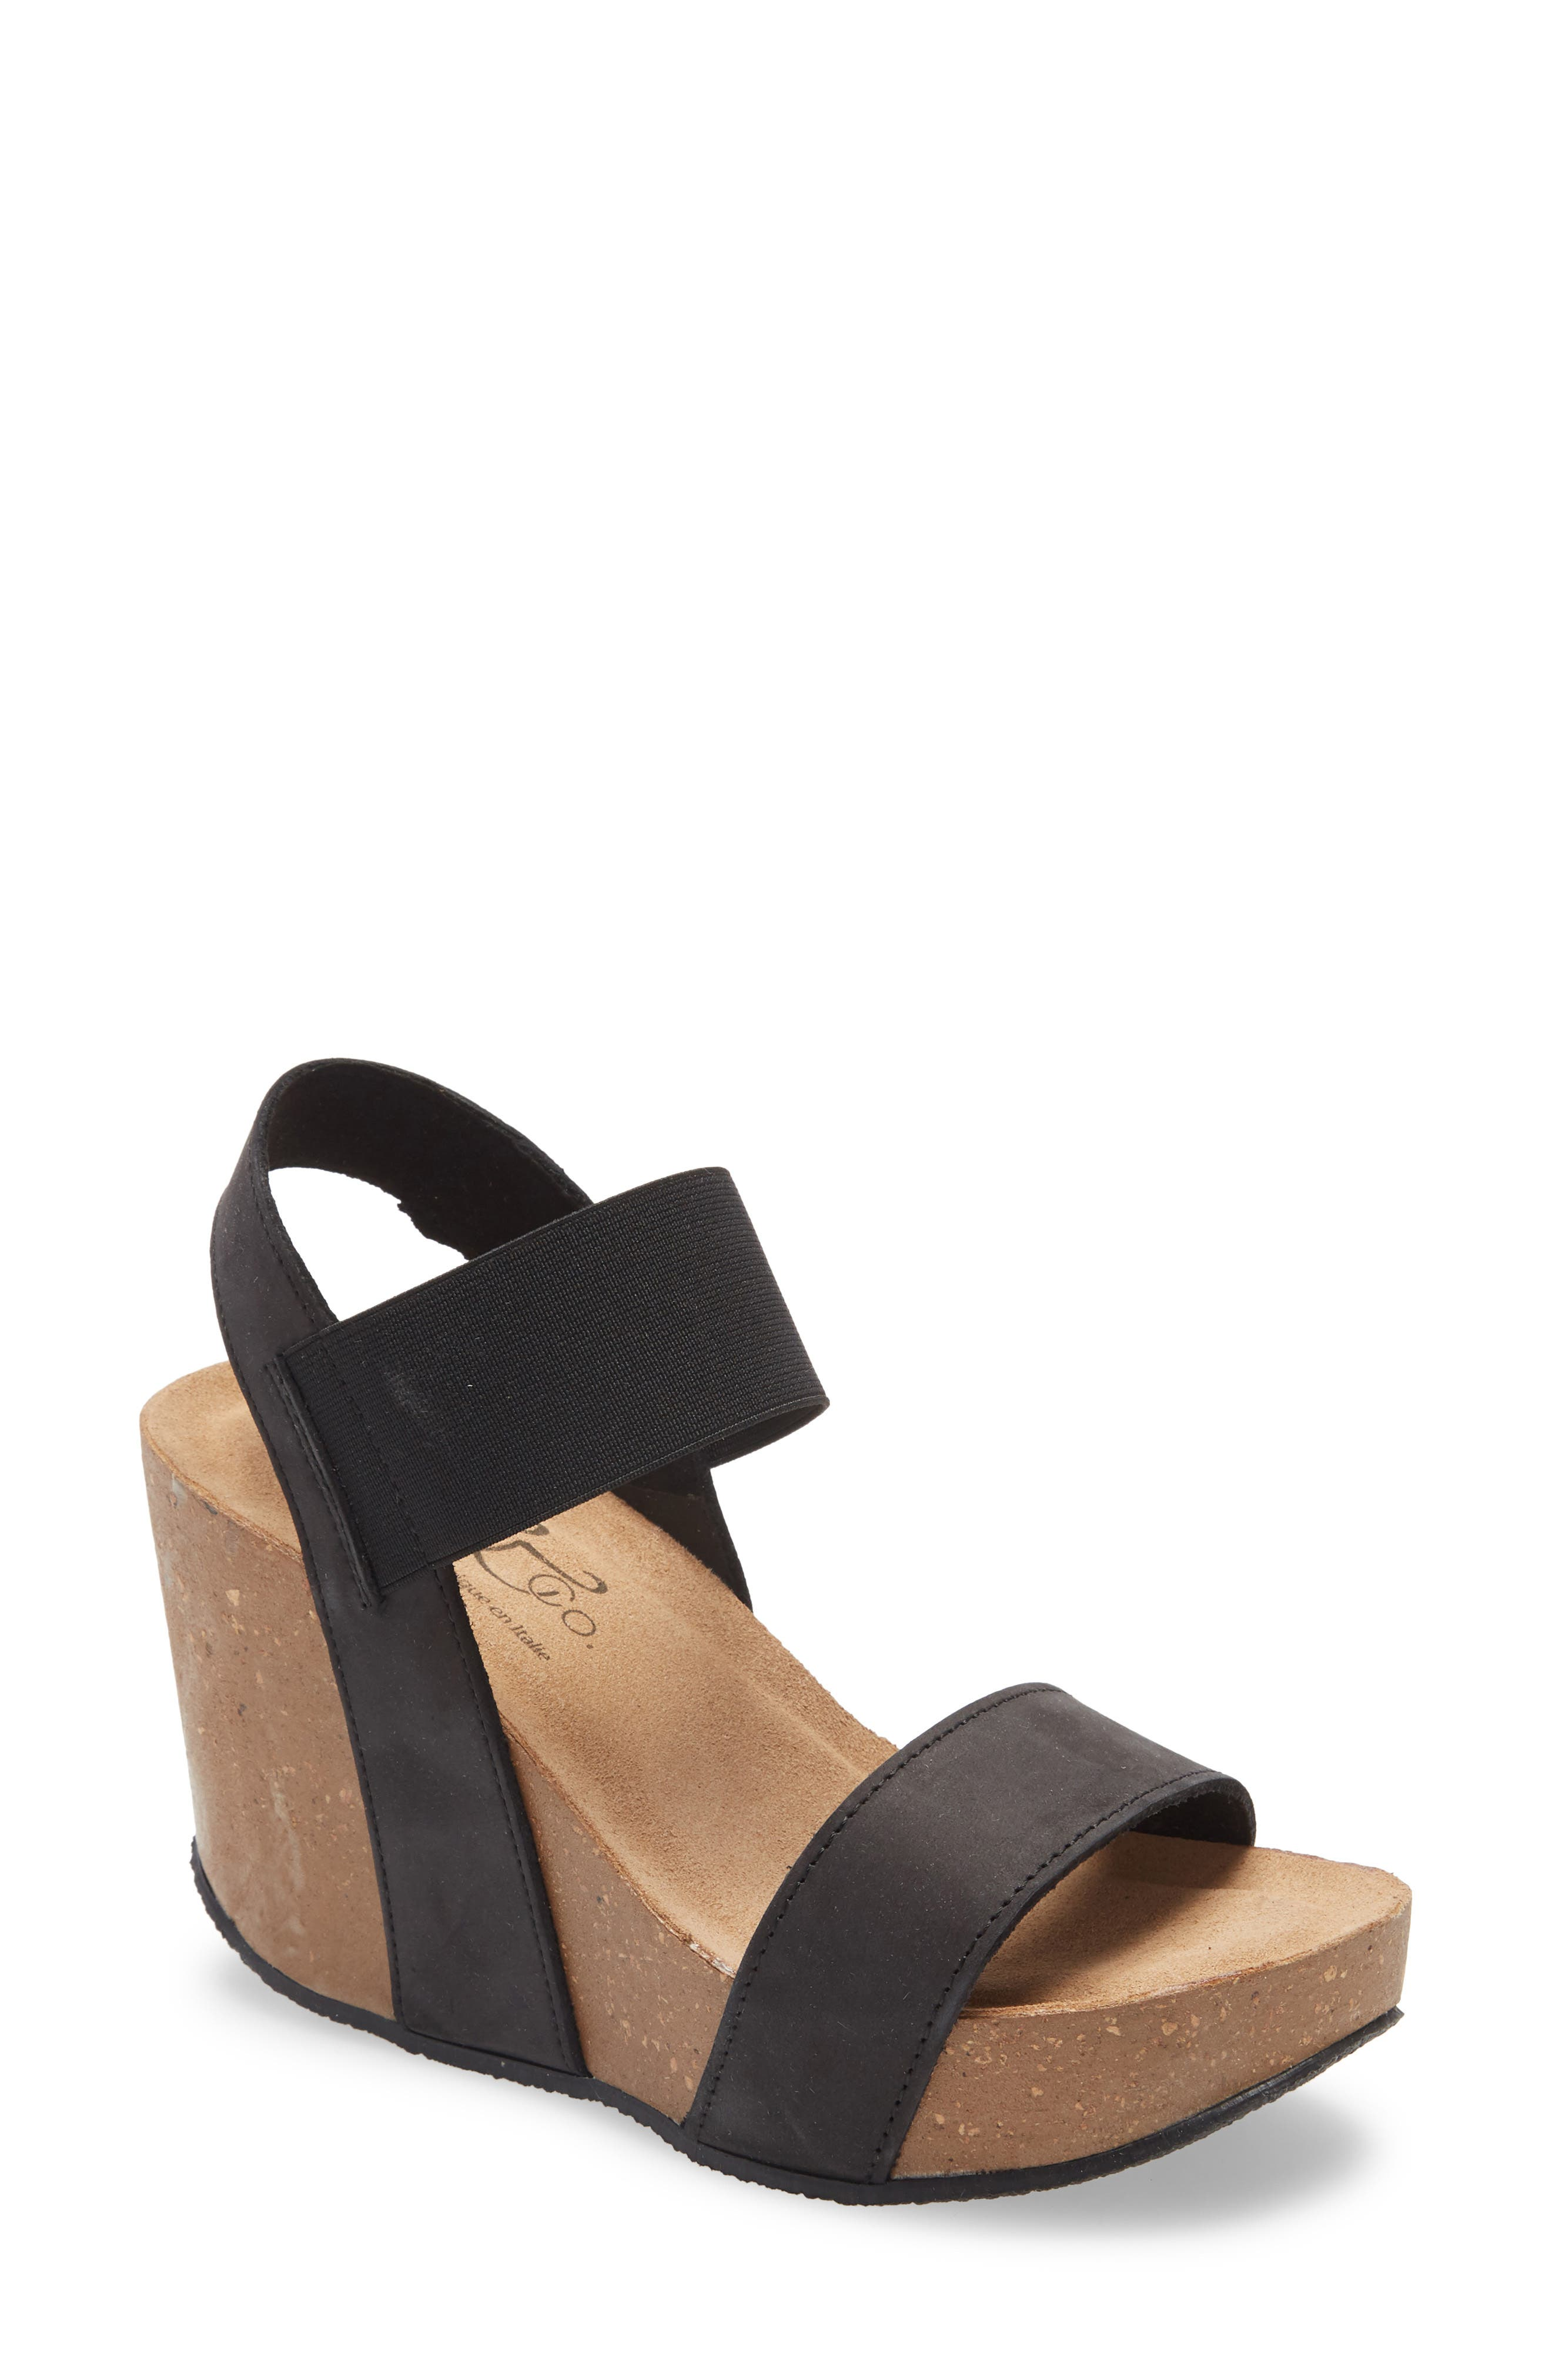 A lofty wedge adds throwback attitude to a cushioned platform sandal that\\\'s destined to stand out from the crowd. Style Name: Bos. & Co. Platform Wedge Sandal (Women). Style Number: 6002117. Available in stores.